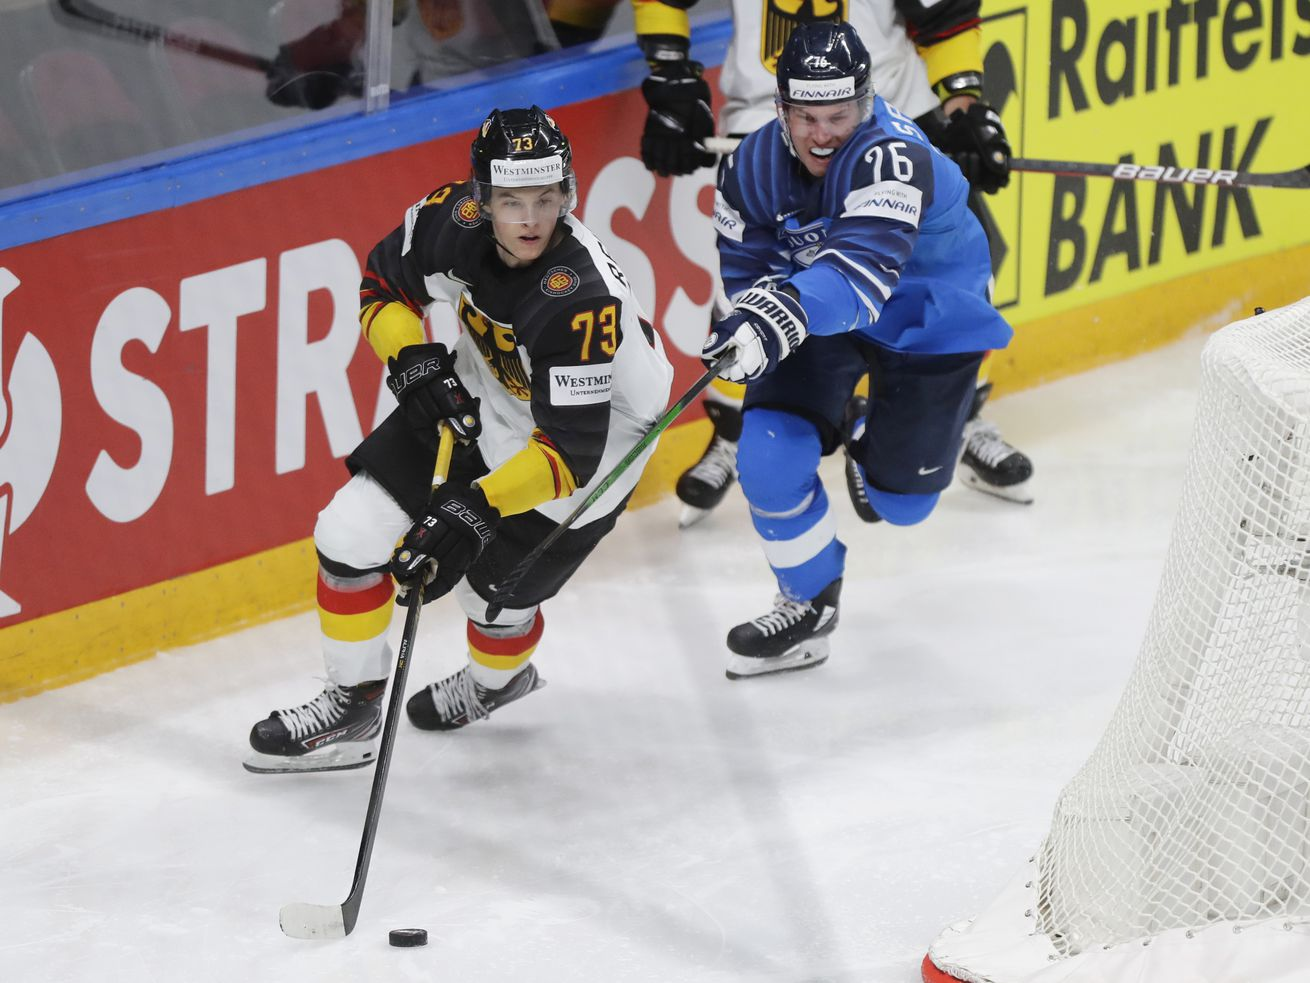 Lukas Reichel played for Germany in the World Championships.